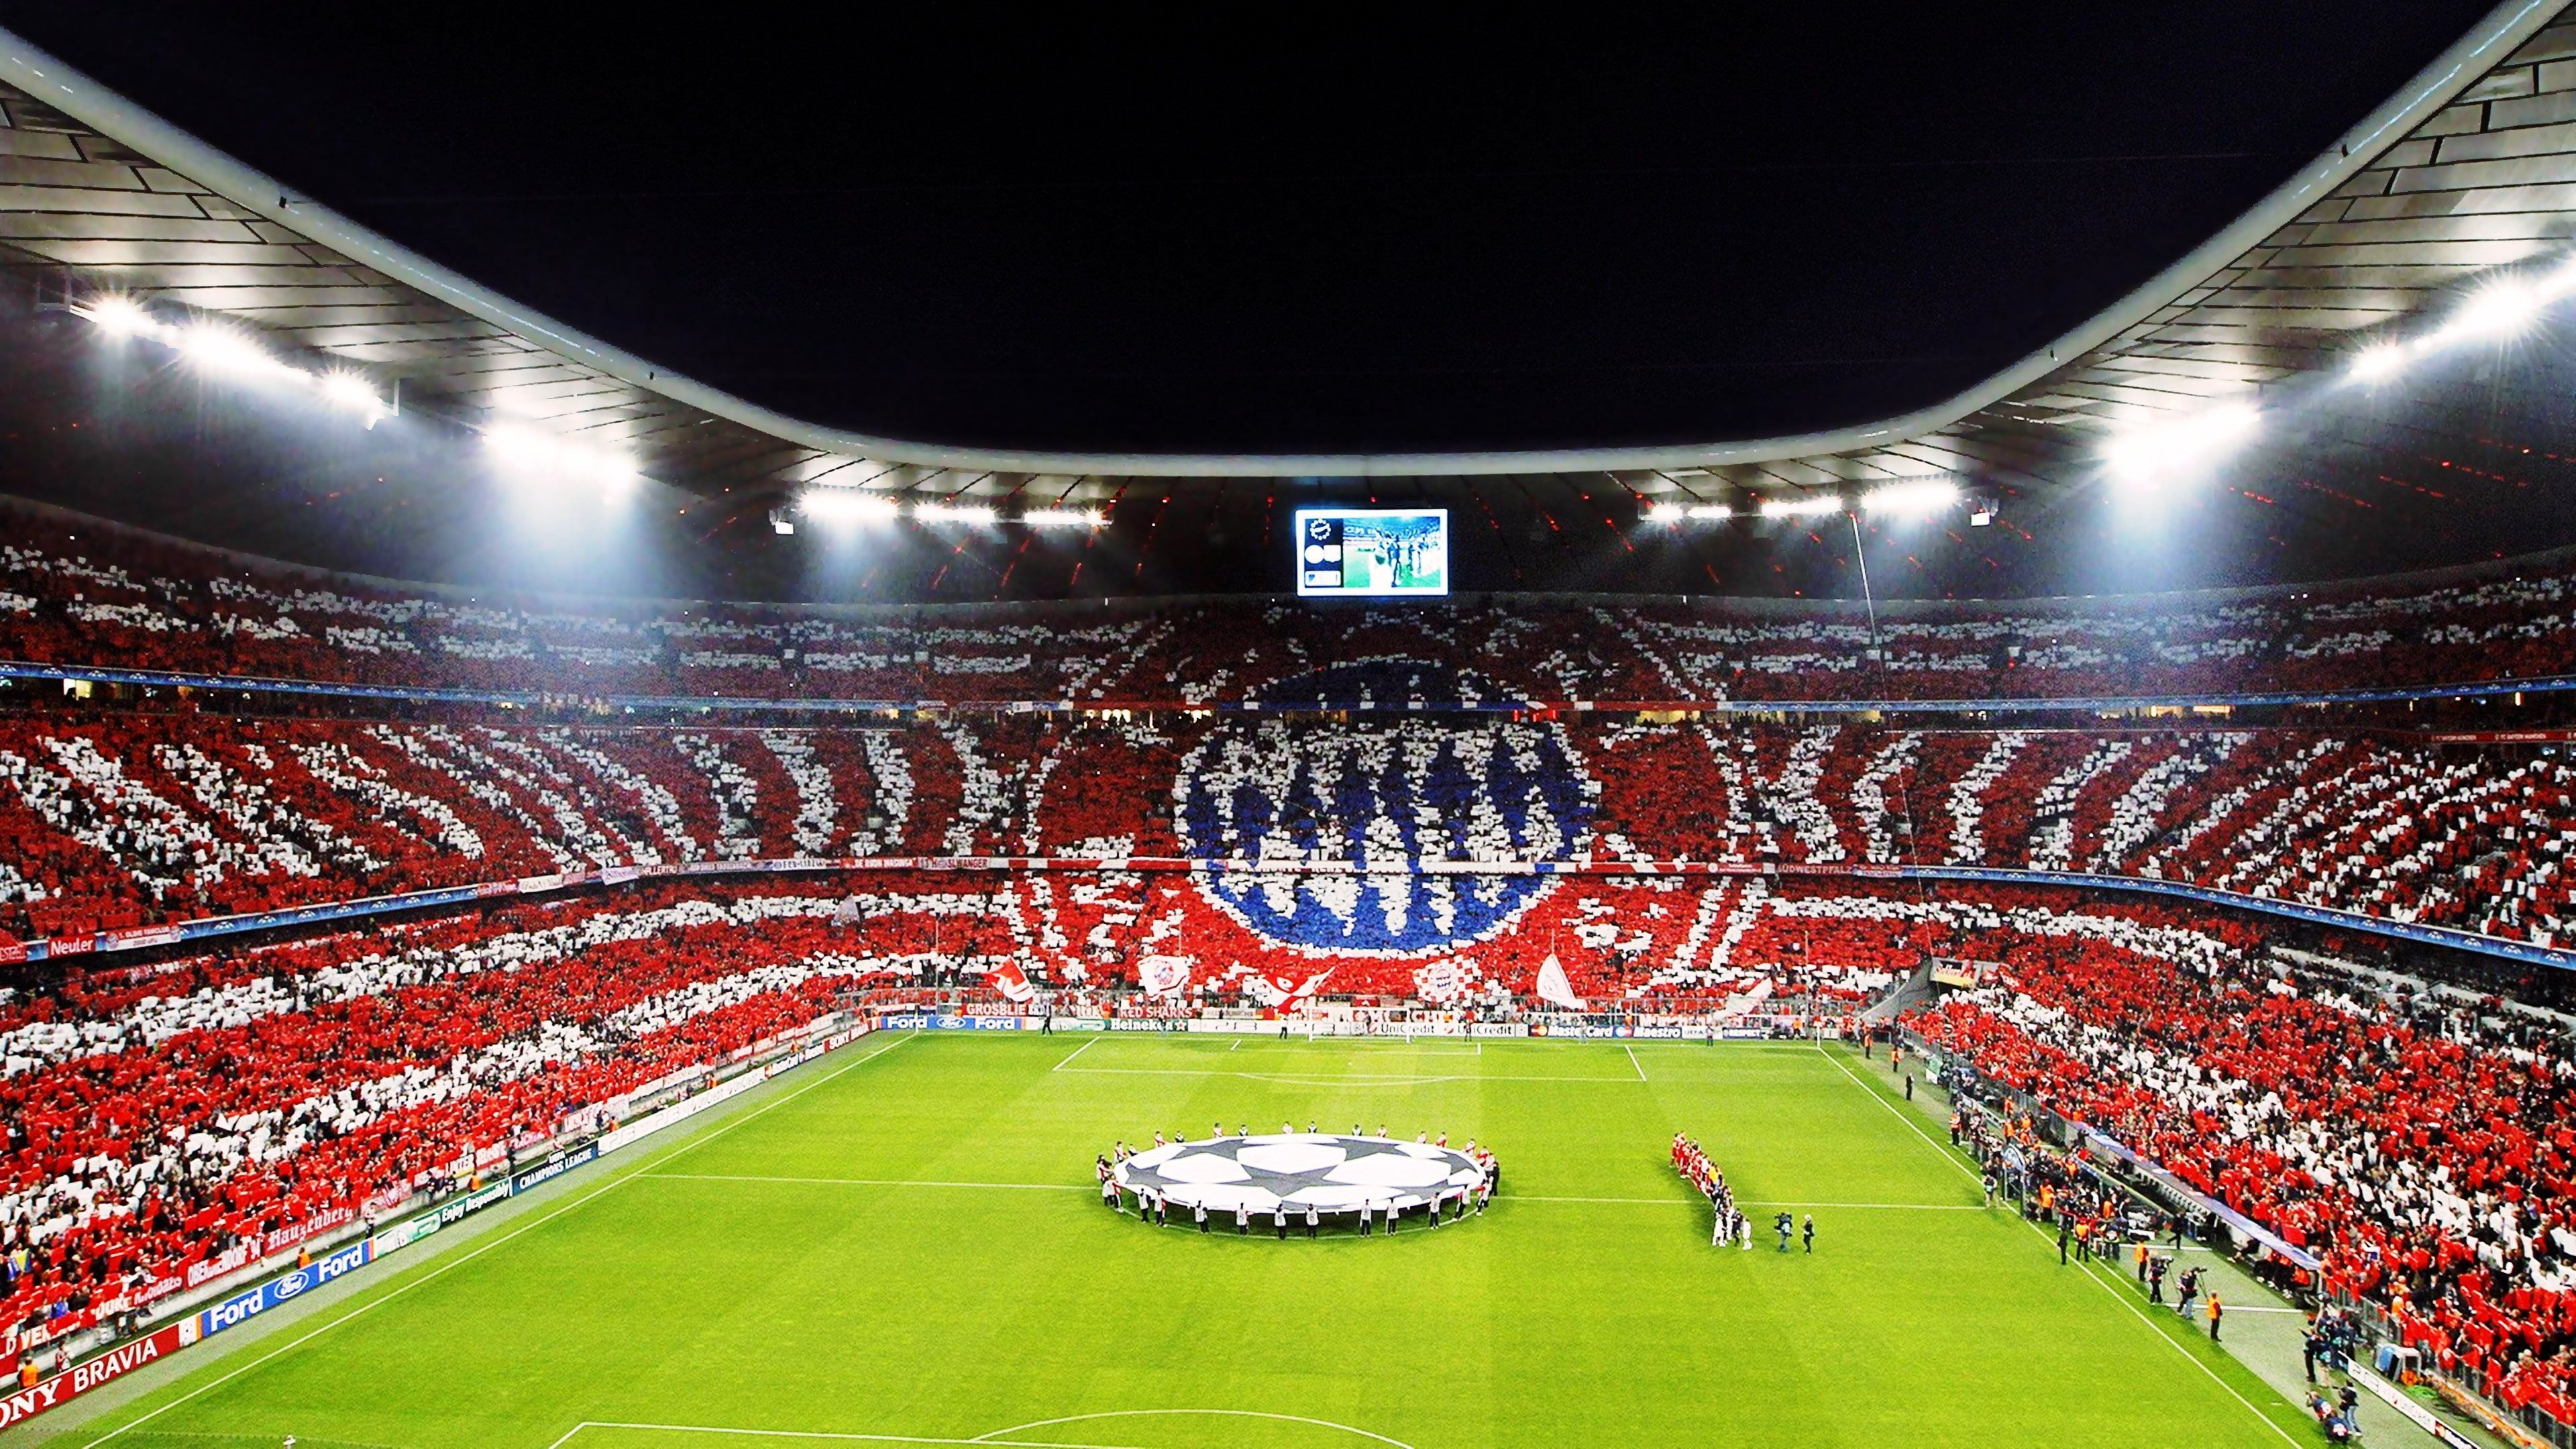 1900 Allianz Arena Bayern Bundesliga Champions Fans 4k Wallpaper Hdwallpaper Desktop Bayern Bayern Munich Wallpapers Bayern Munich